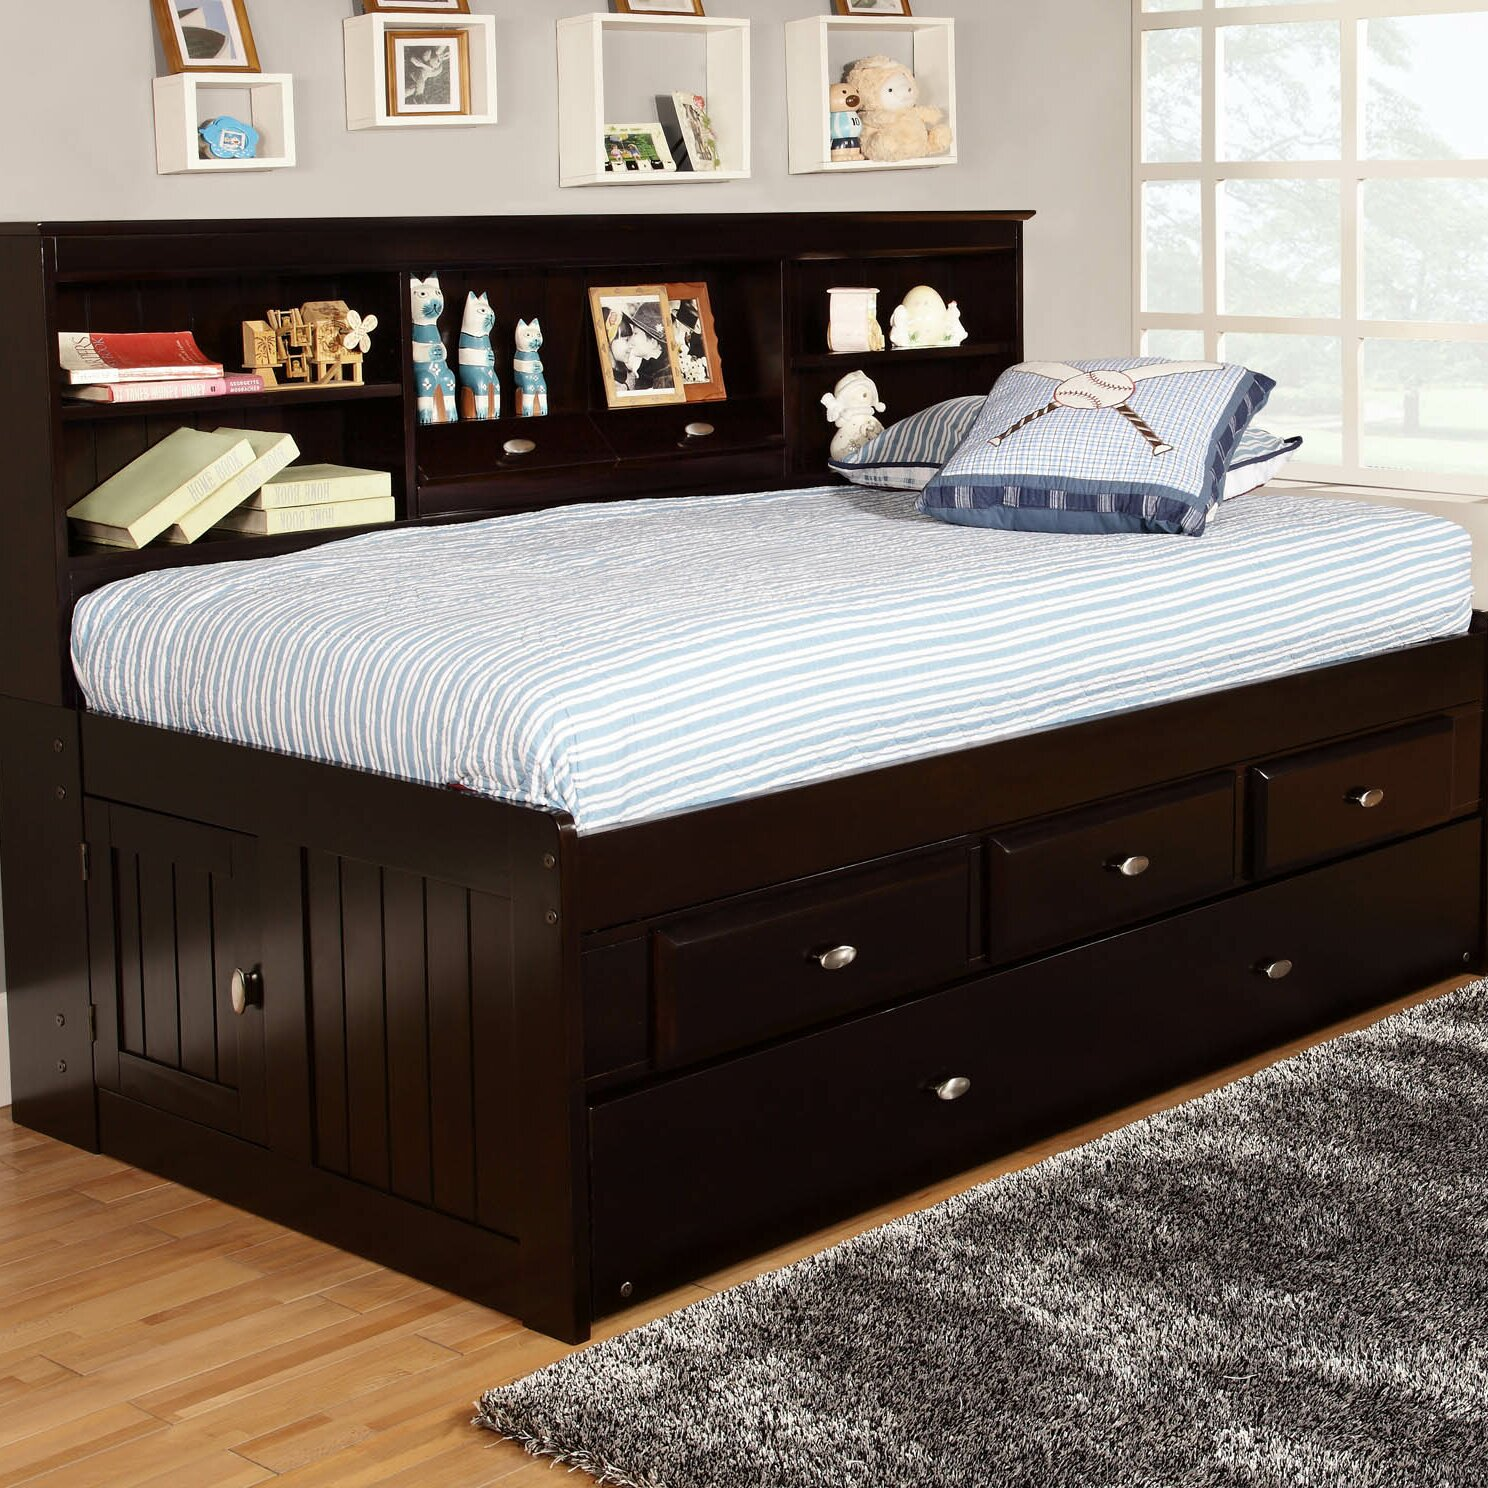 Discovery World Furniture Captain's Bed With Trundle